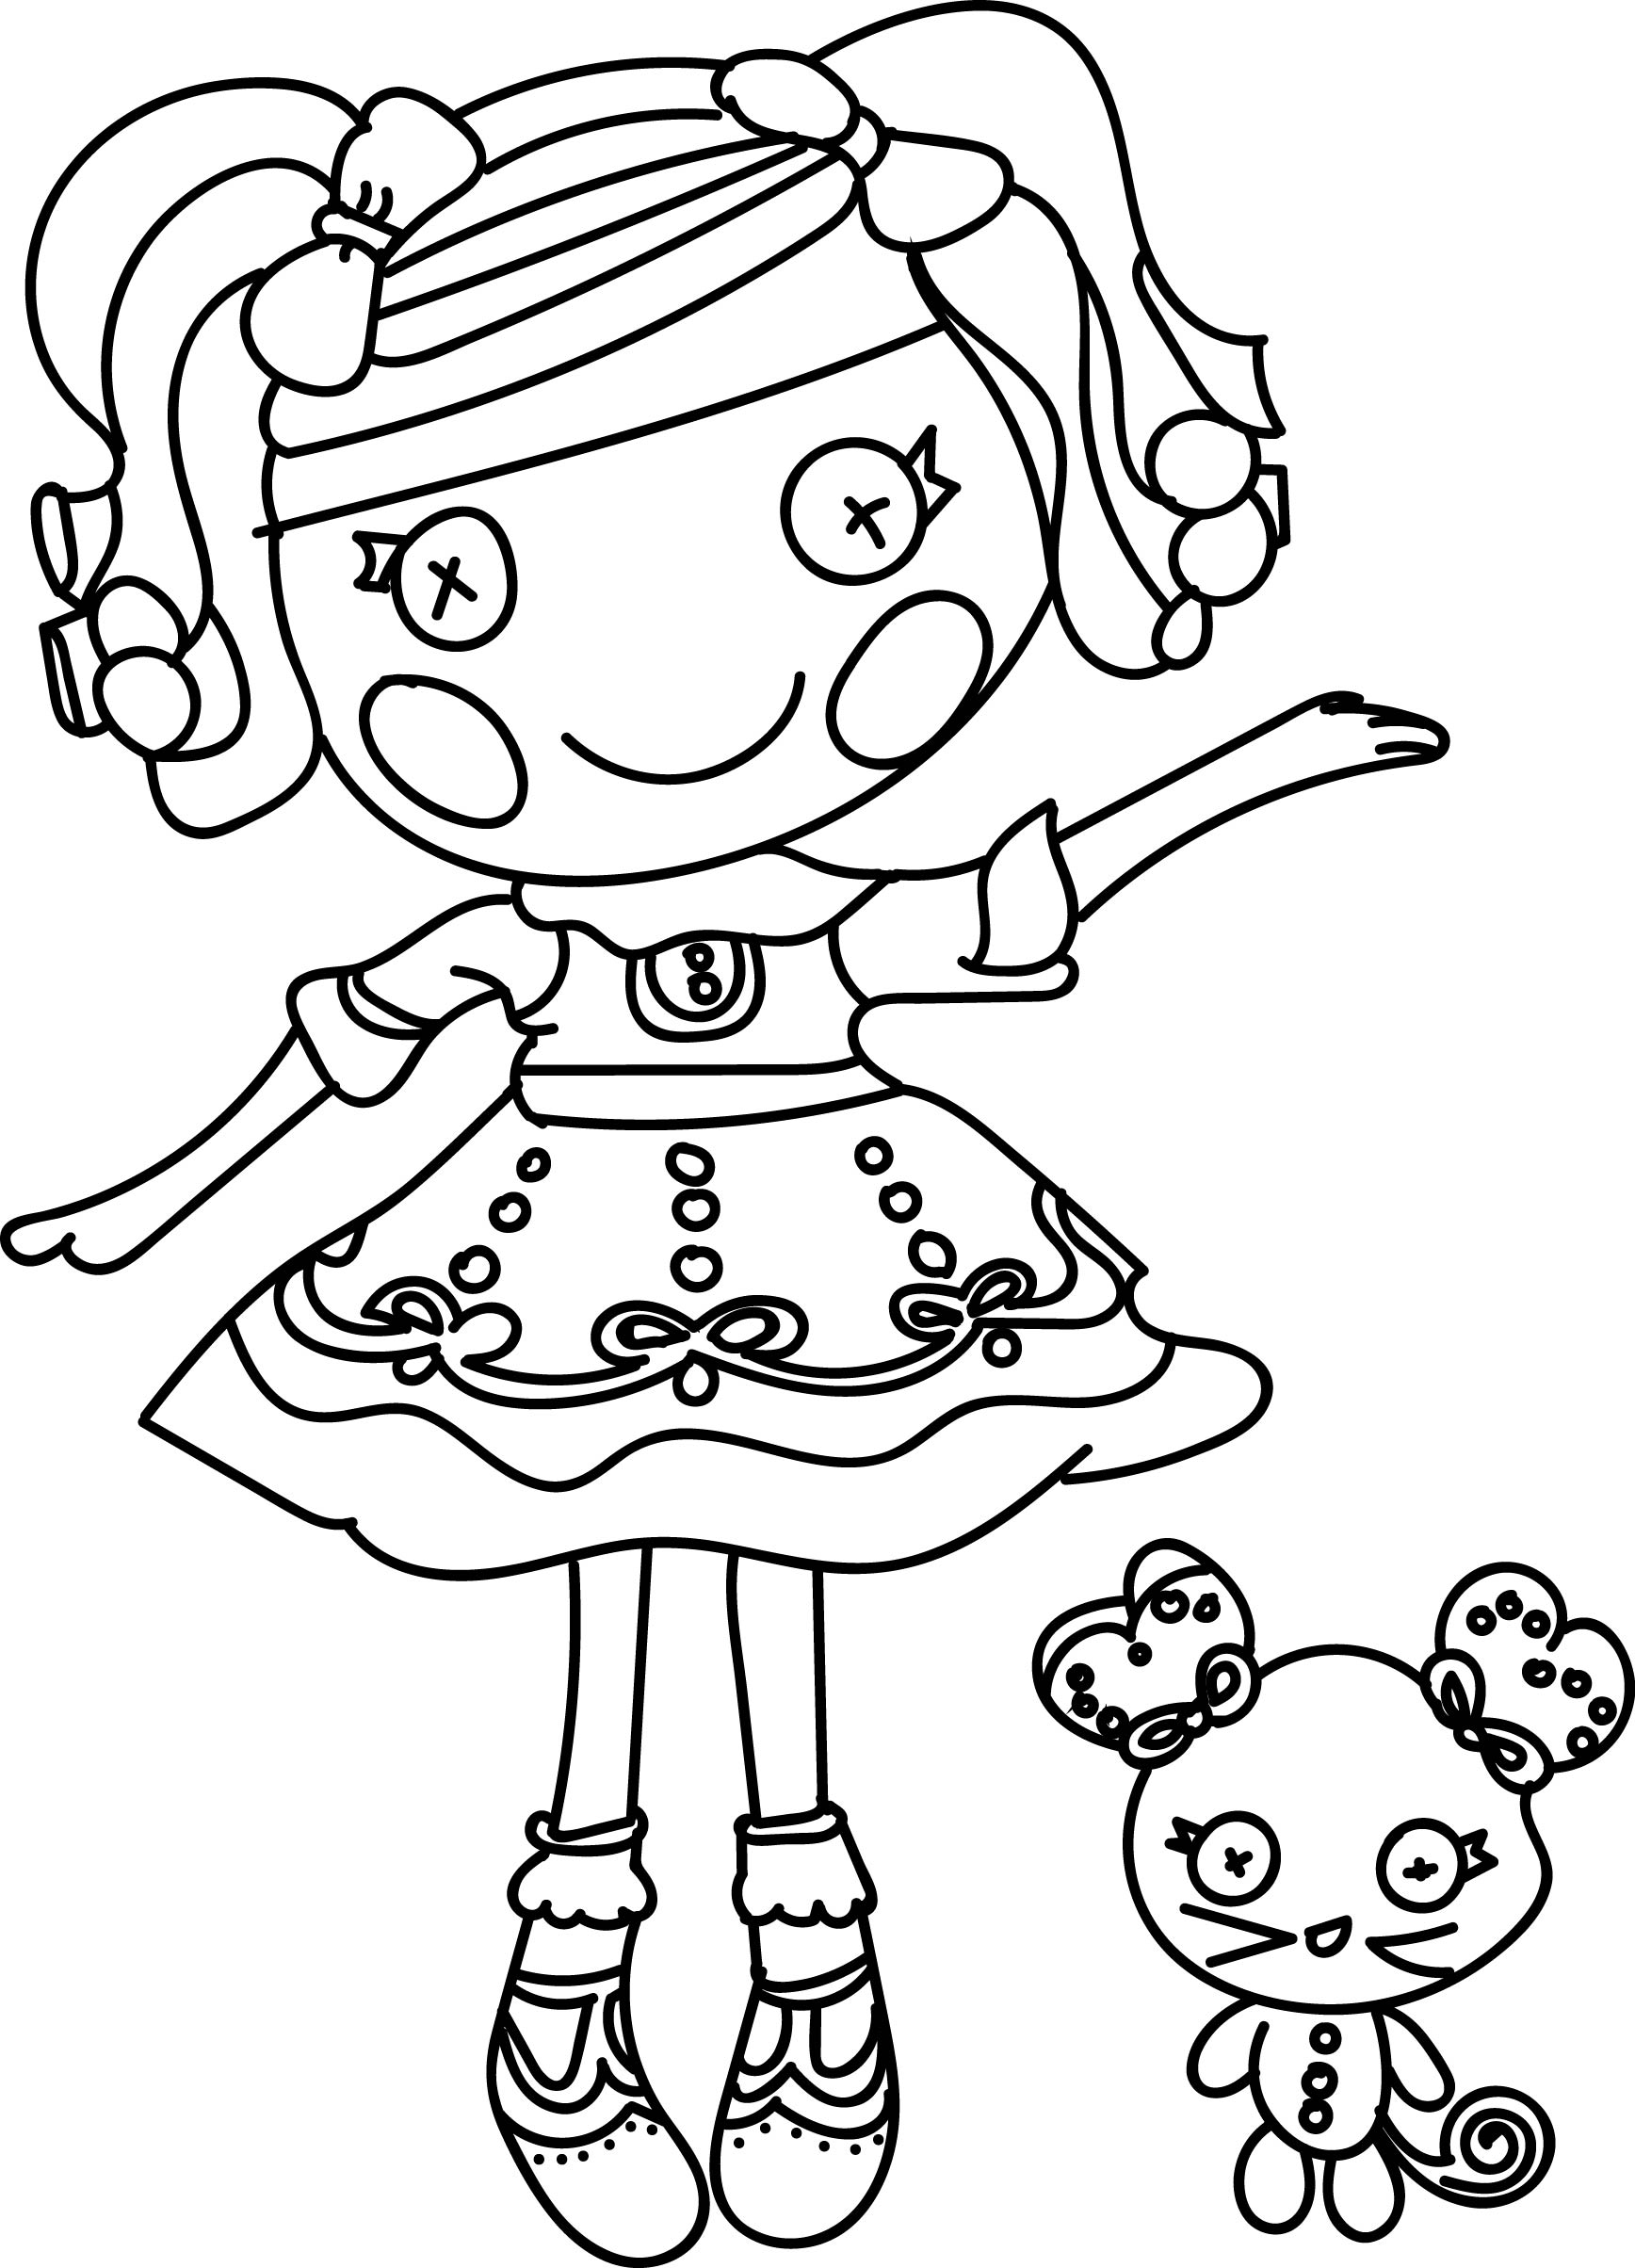 coloring pages lalaloopsy dolls the best lalaloopsy dolls coloring pages coloring pages dolls lalaloopsy